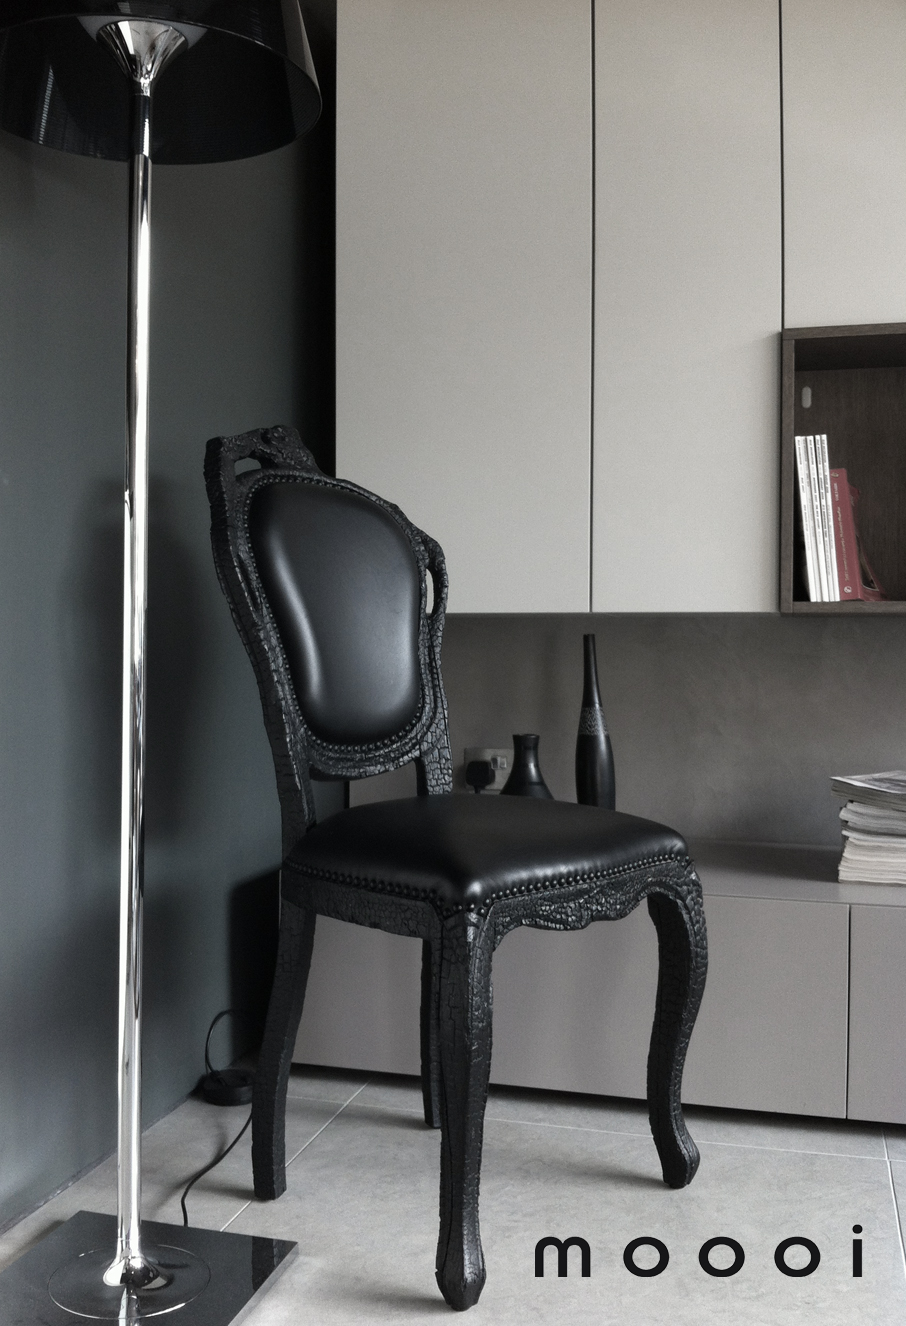 Moooi burnt chair from Abitalia